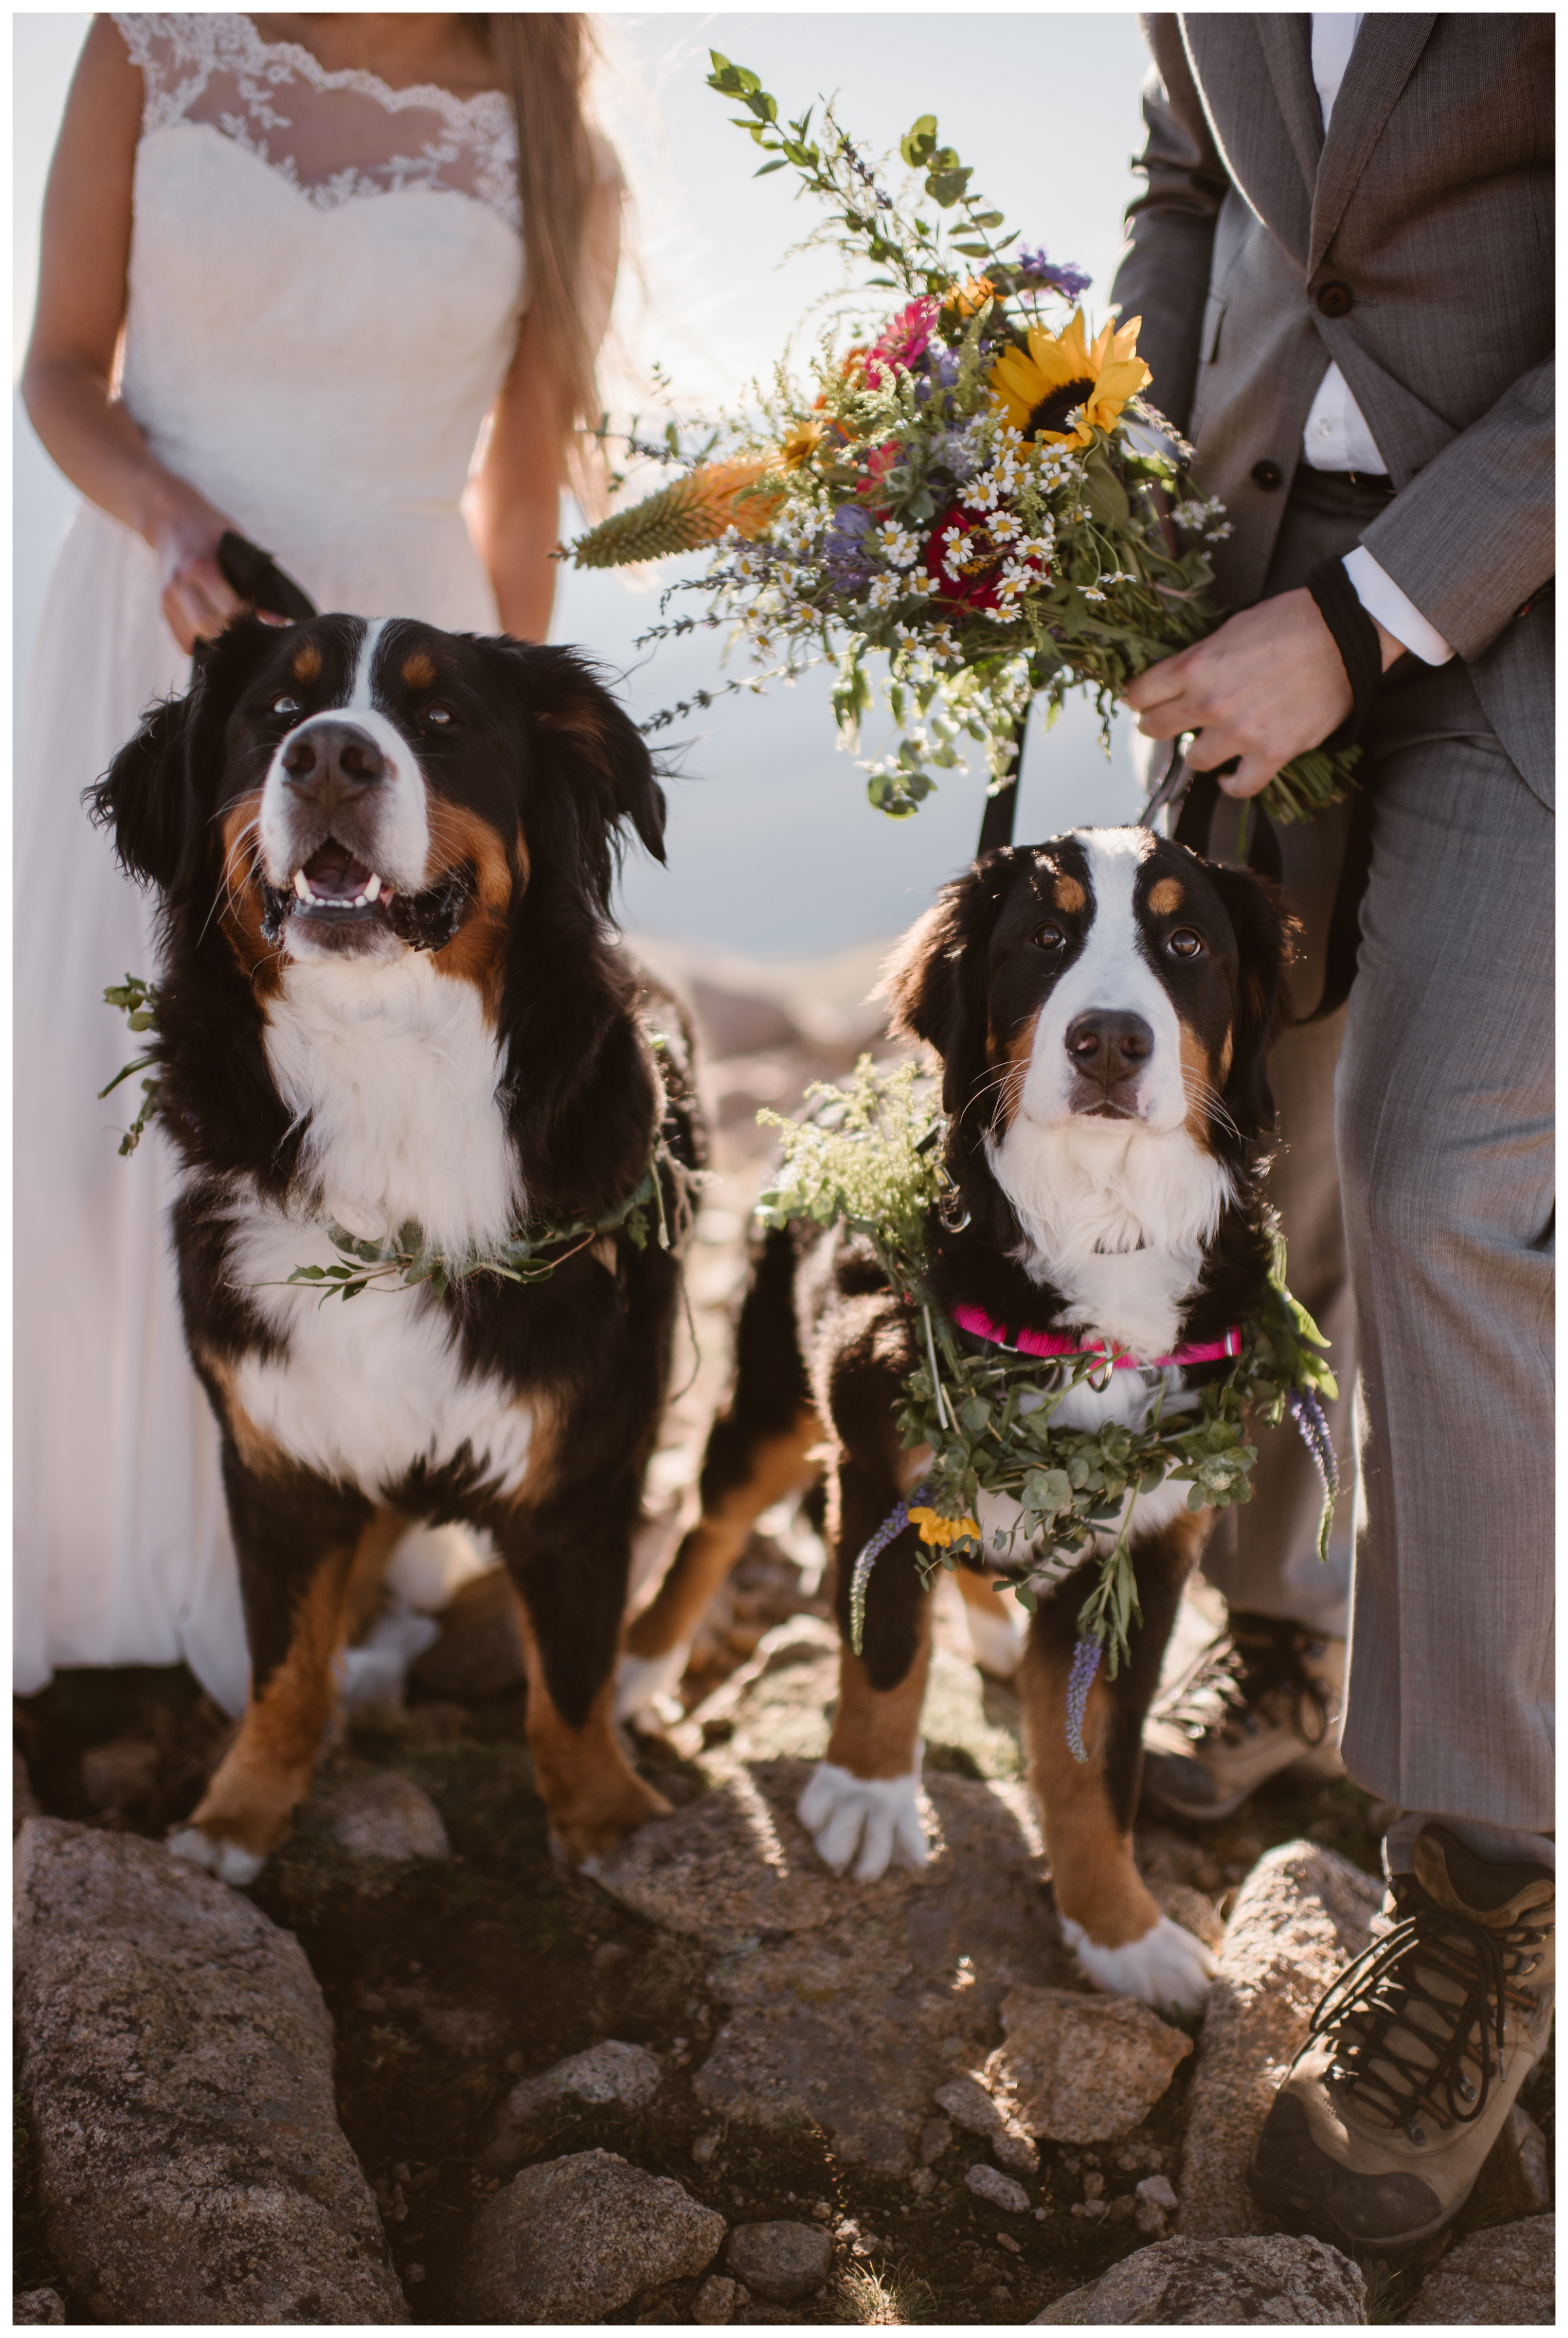 If you want to have your dogs present with you when you elope, make sure your location allows animals. Have a plan for where they'll go during the day if they're not with you the entire time. And maybe let them dress up a little for the occasion too. Where you elope and how you say your vows matters! Photo by Maddie Mae, Adventure Instead Elopement Photographers.